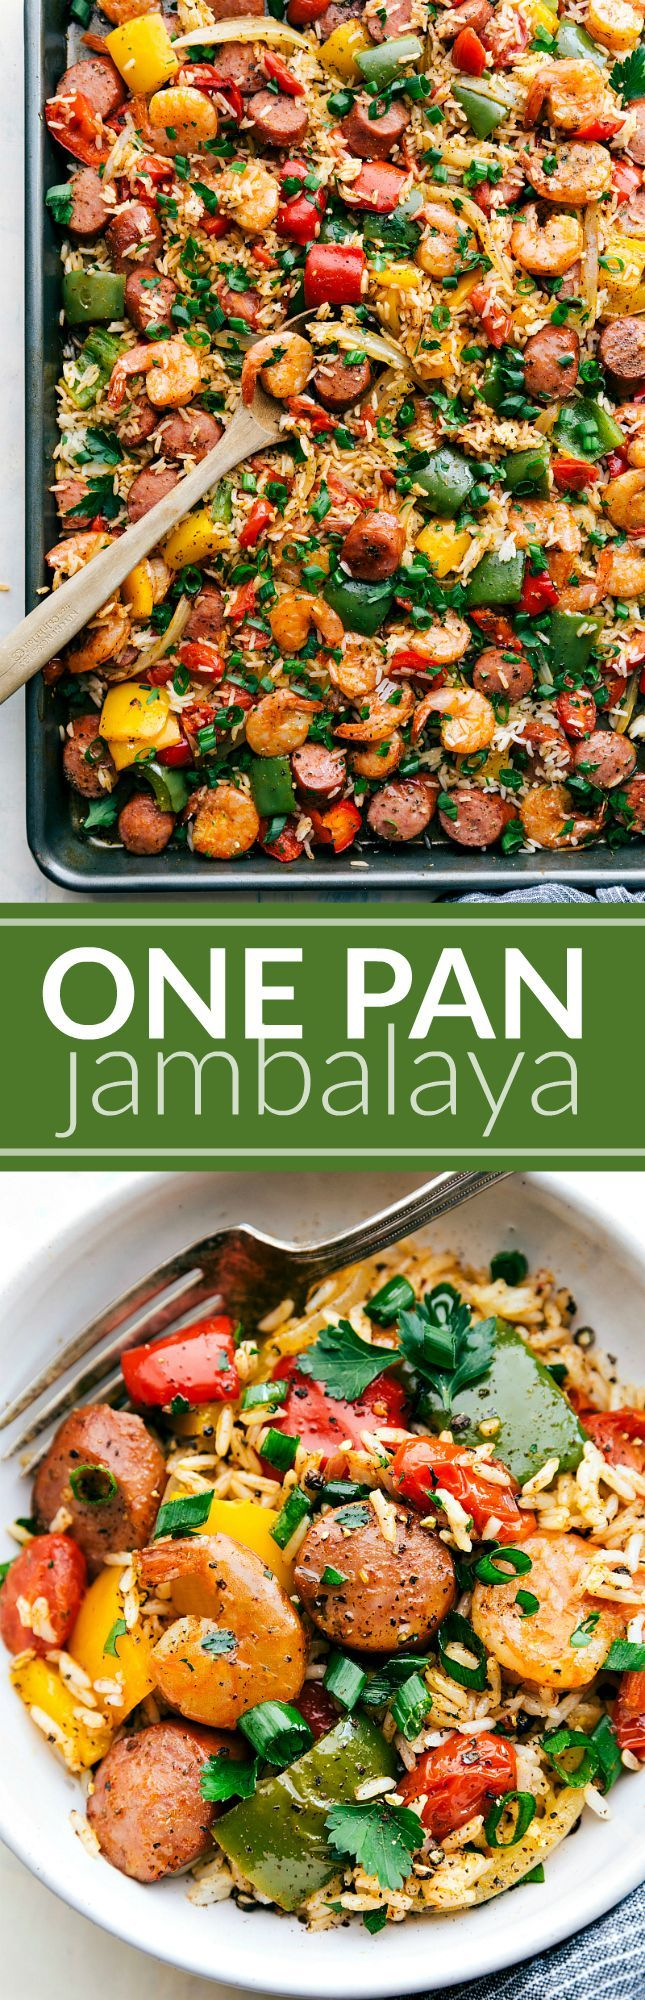 ONE PAN JAMBALAYA! Sausage, shrimp, seasoned veggies, AND rice all cooked together on ONE PAN! Easy 30-minute dinner via chelseasmessyapron.com